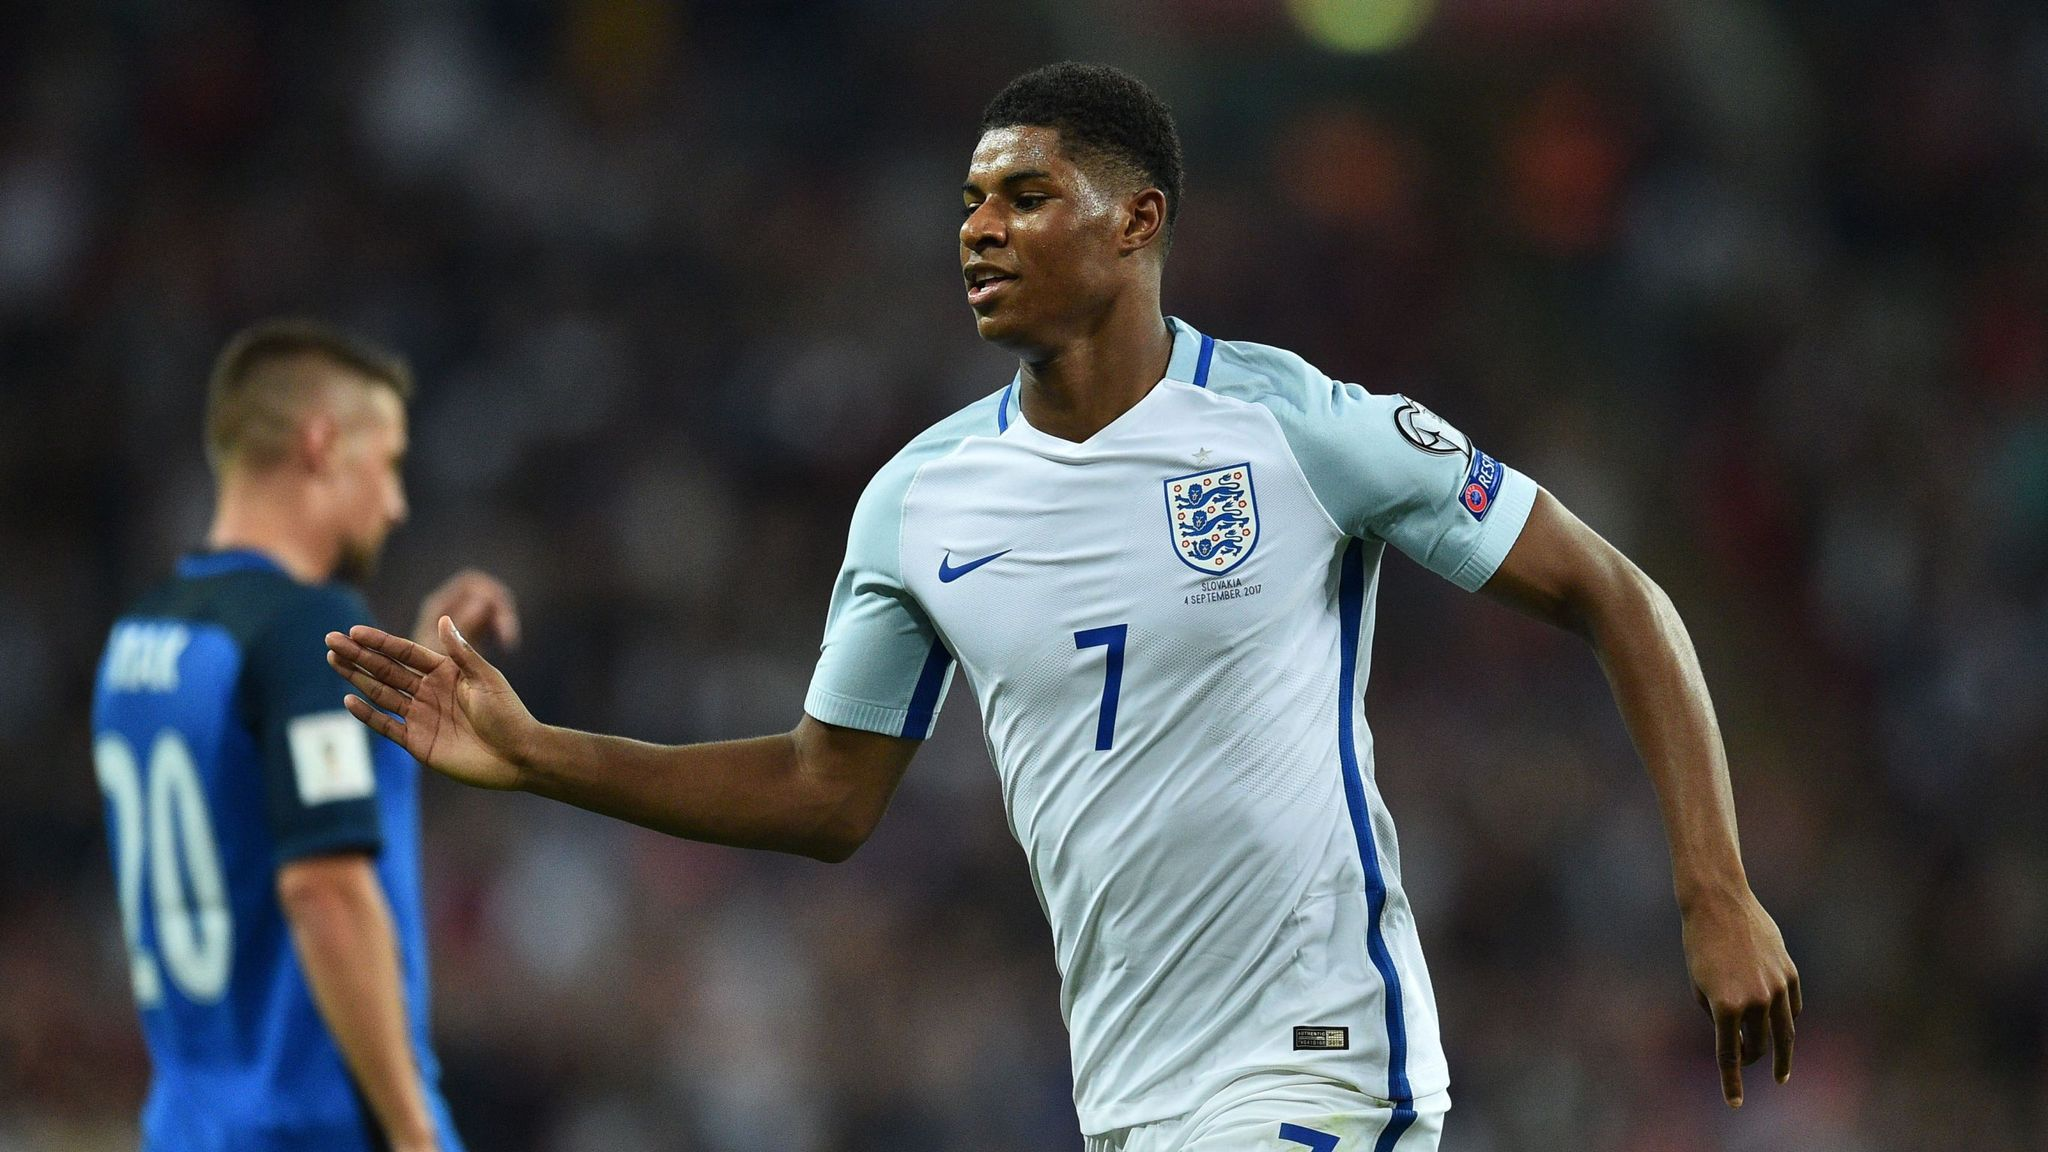 Jermain Defoe Says Sky Is The Limit For Marcus Rashford Football News Sky Sports